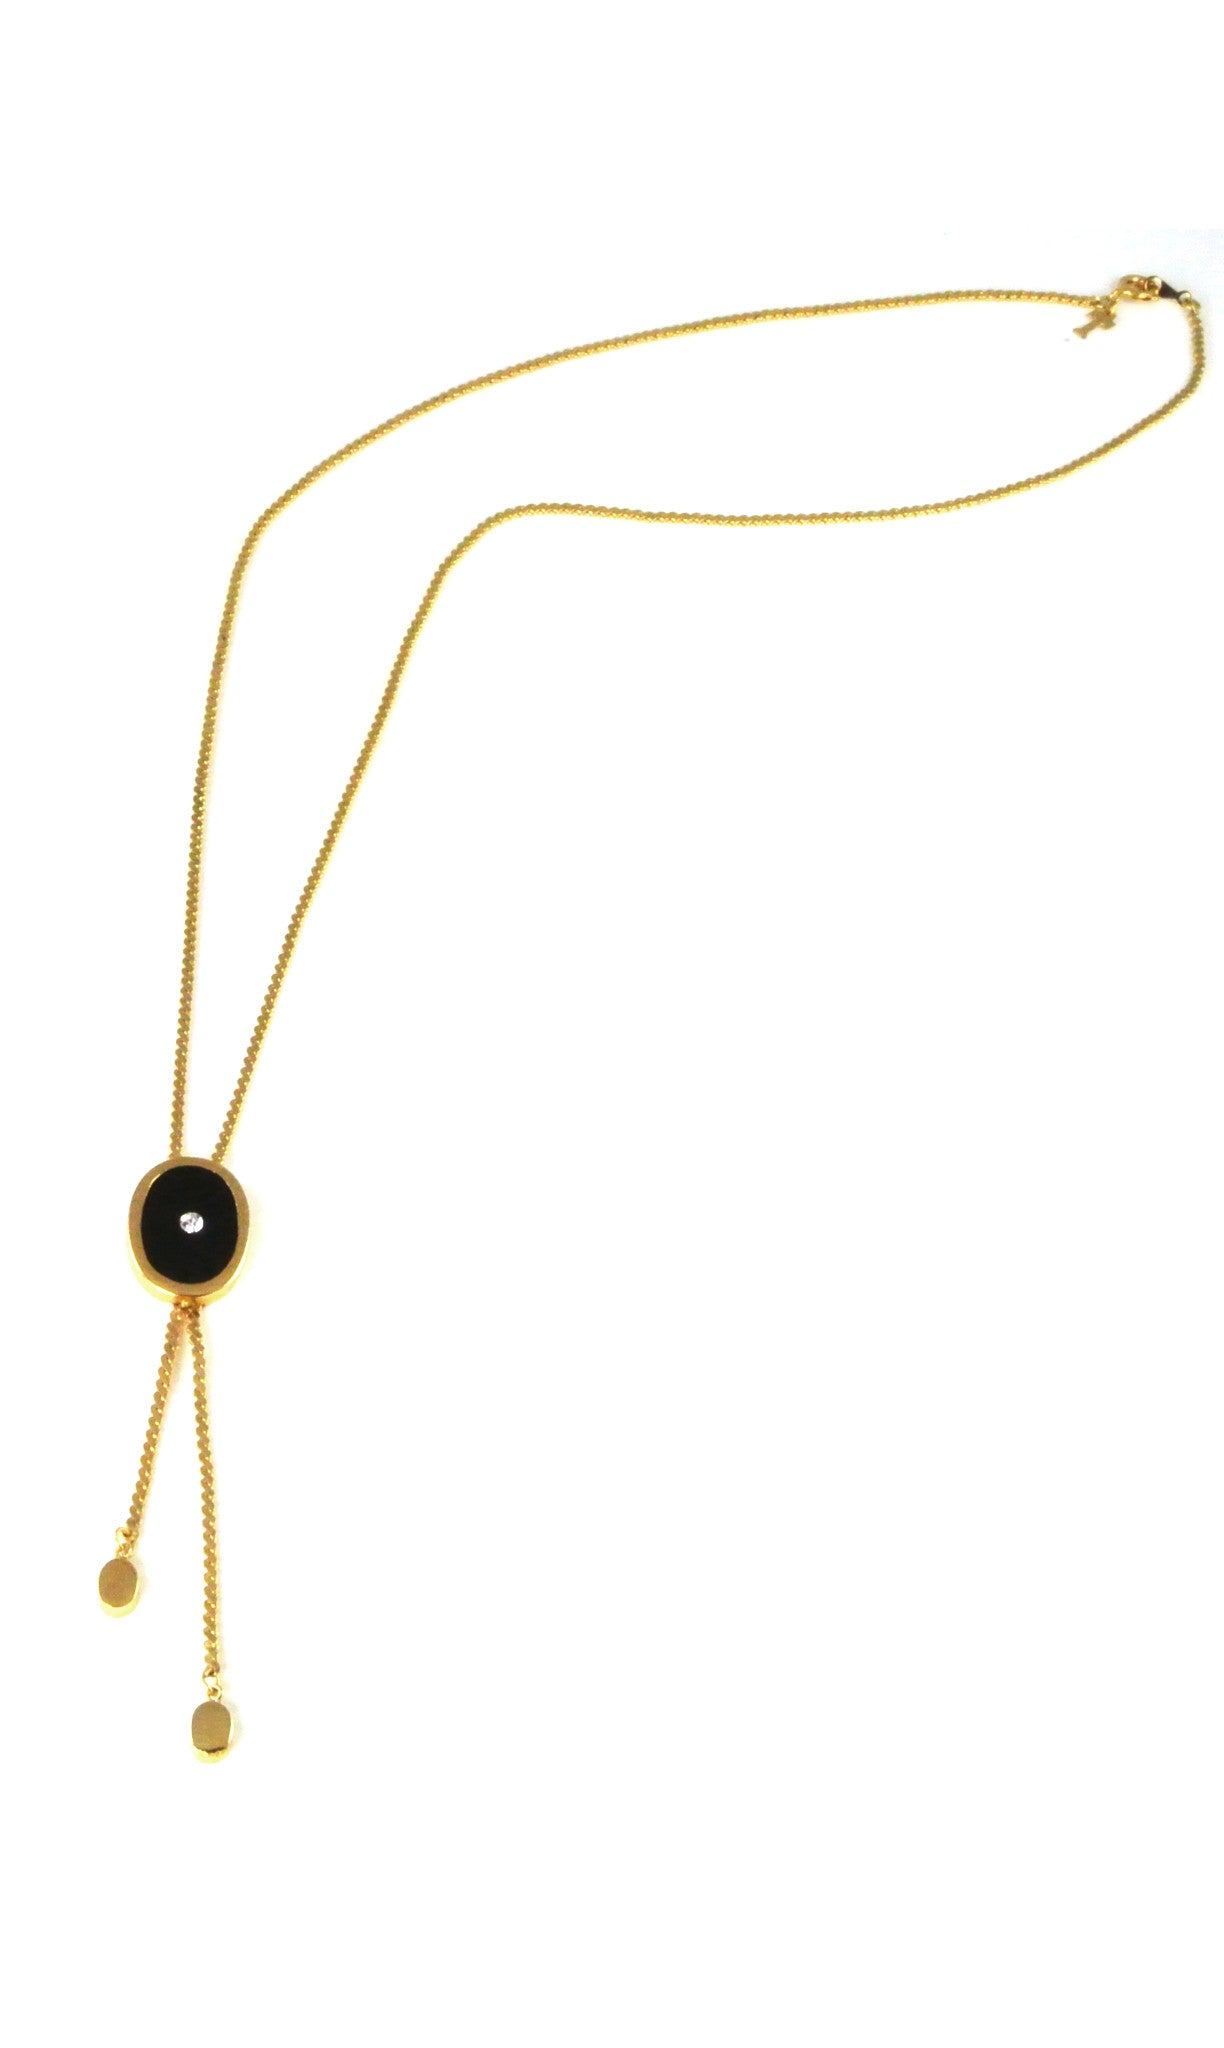 70's__Trifari__Black Bolo Necklace